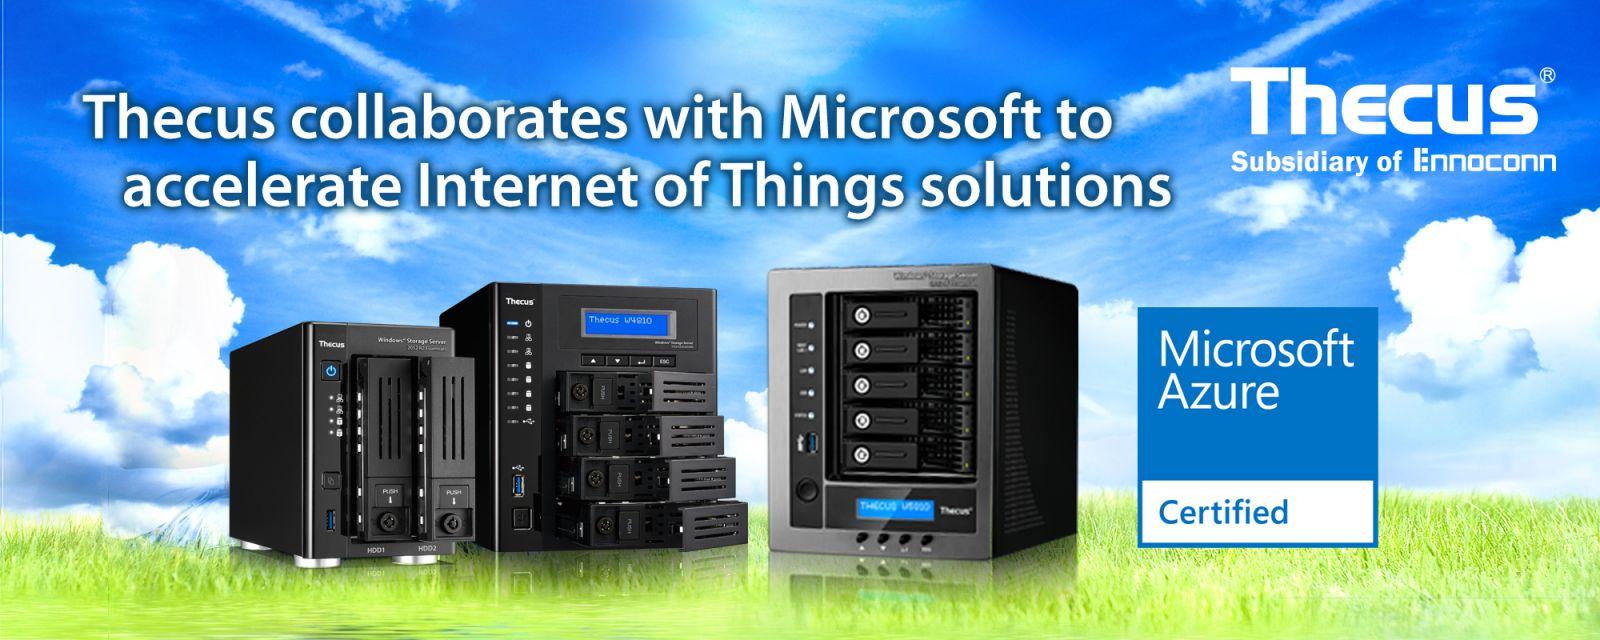 Press room thecus wsse nas receive microsoft azure certification 10192016 thecus technology corp today announced it has joined microsoft azure certified for internet of things iot ensuring customers get iot 1betcityfo Image collections